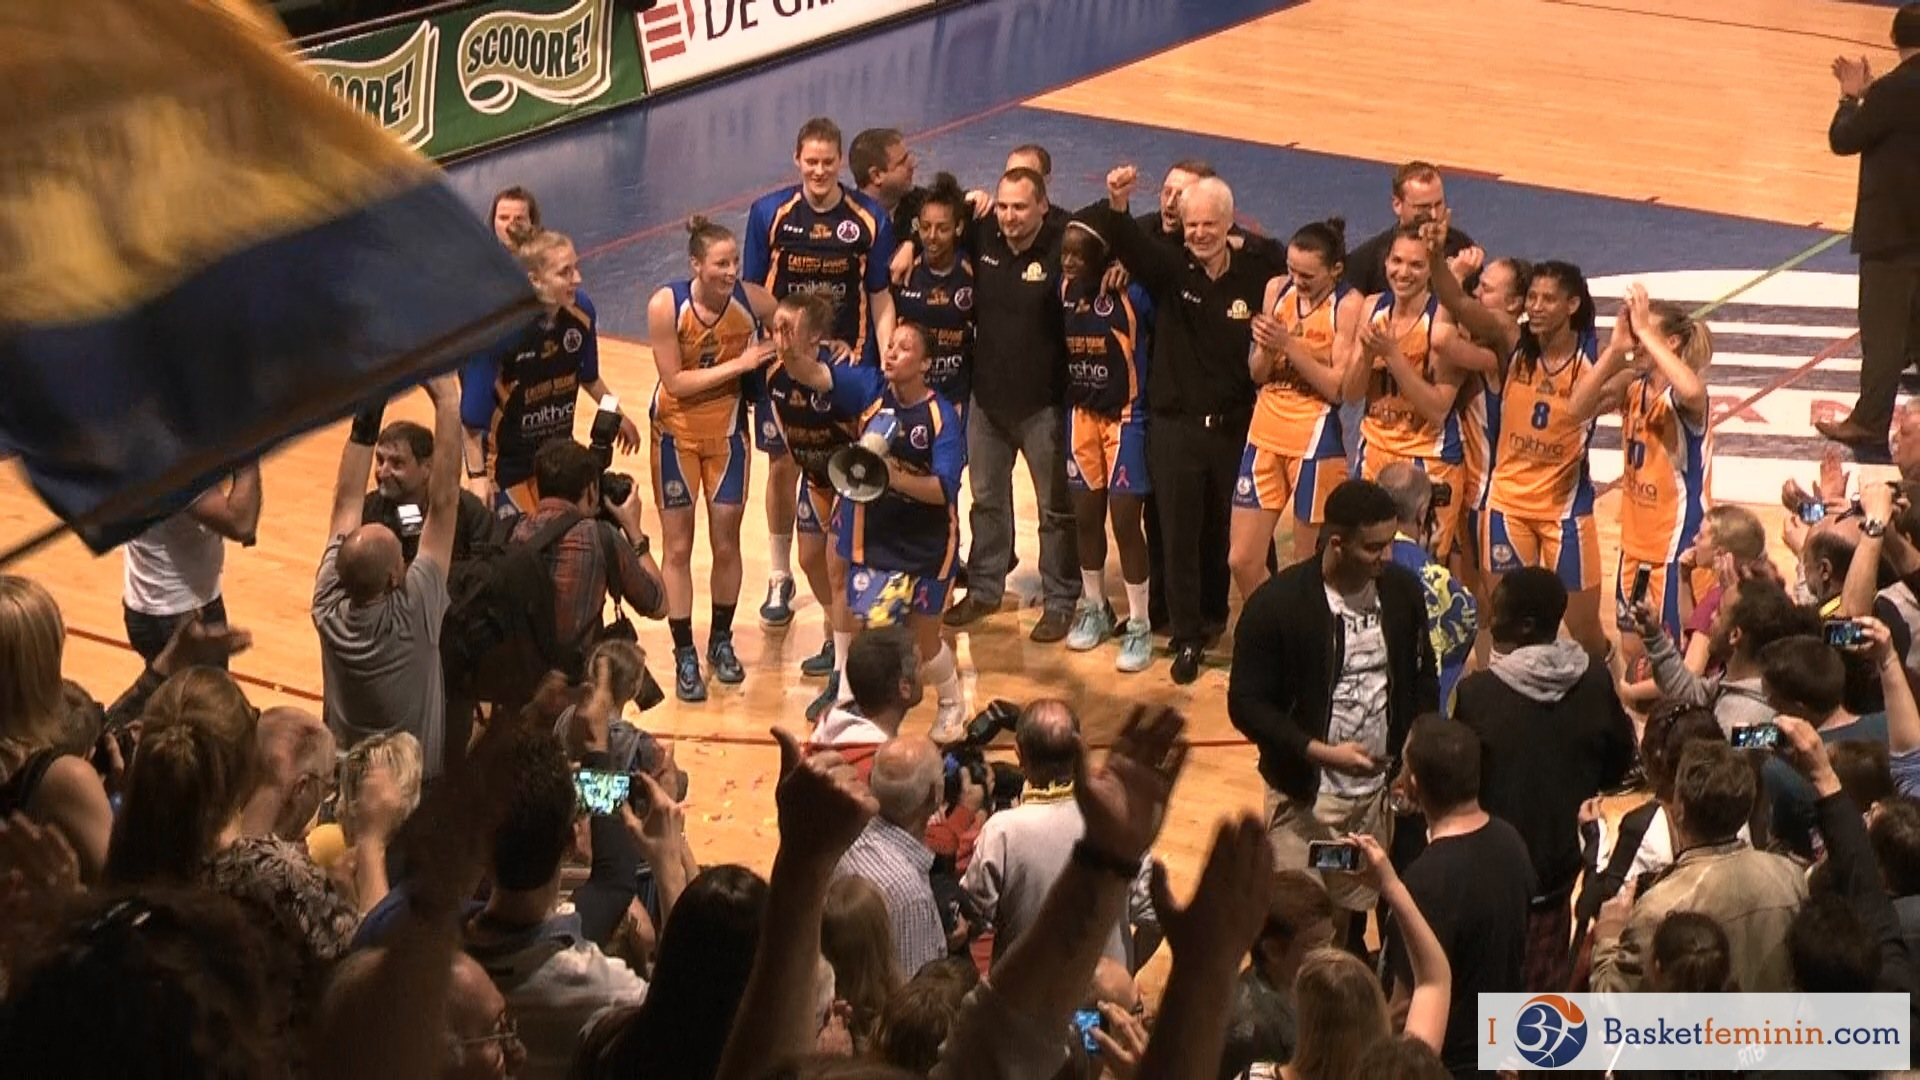 Castors Braine, double champion en titre, remet son titre en jeu